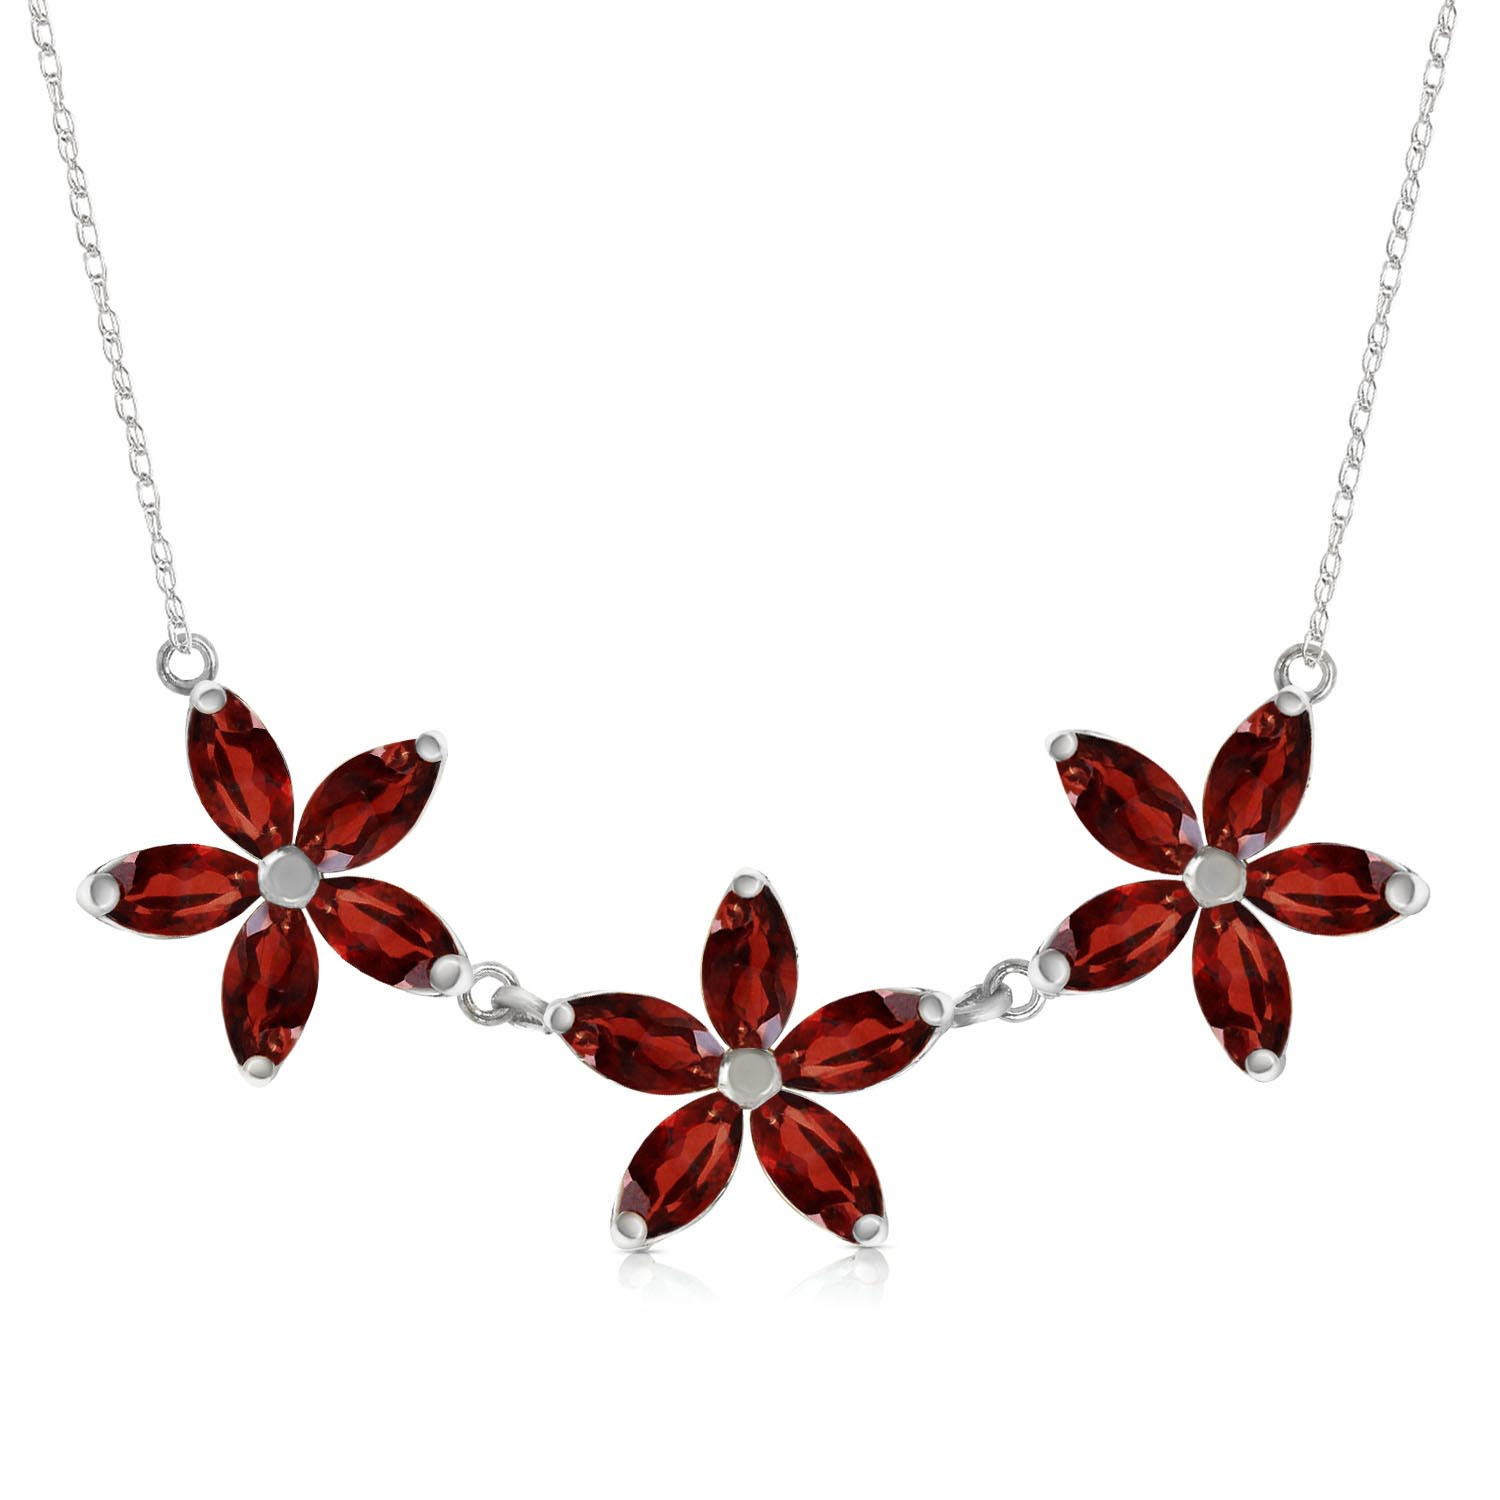 Bargain Marquise Cut Garnet Pendant Necklace 4.2ct in 9ct White Gold Stockists